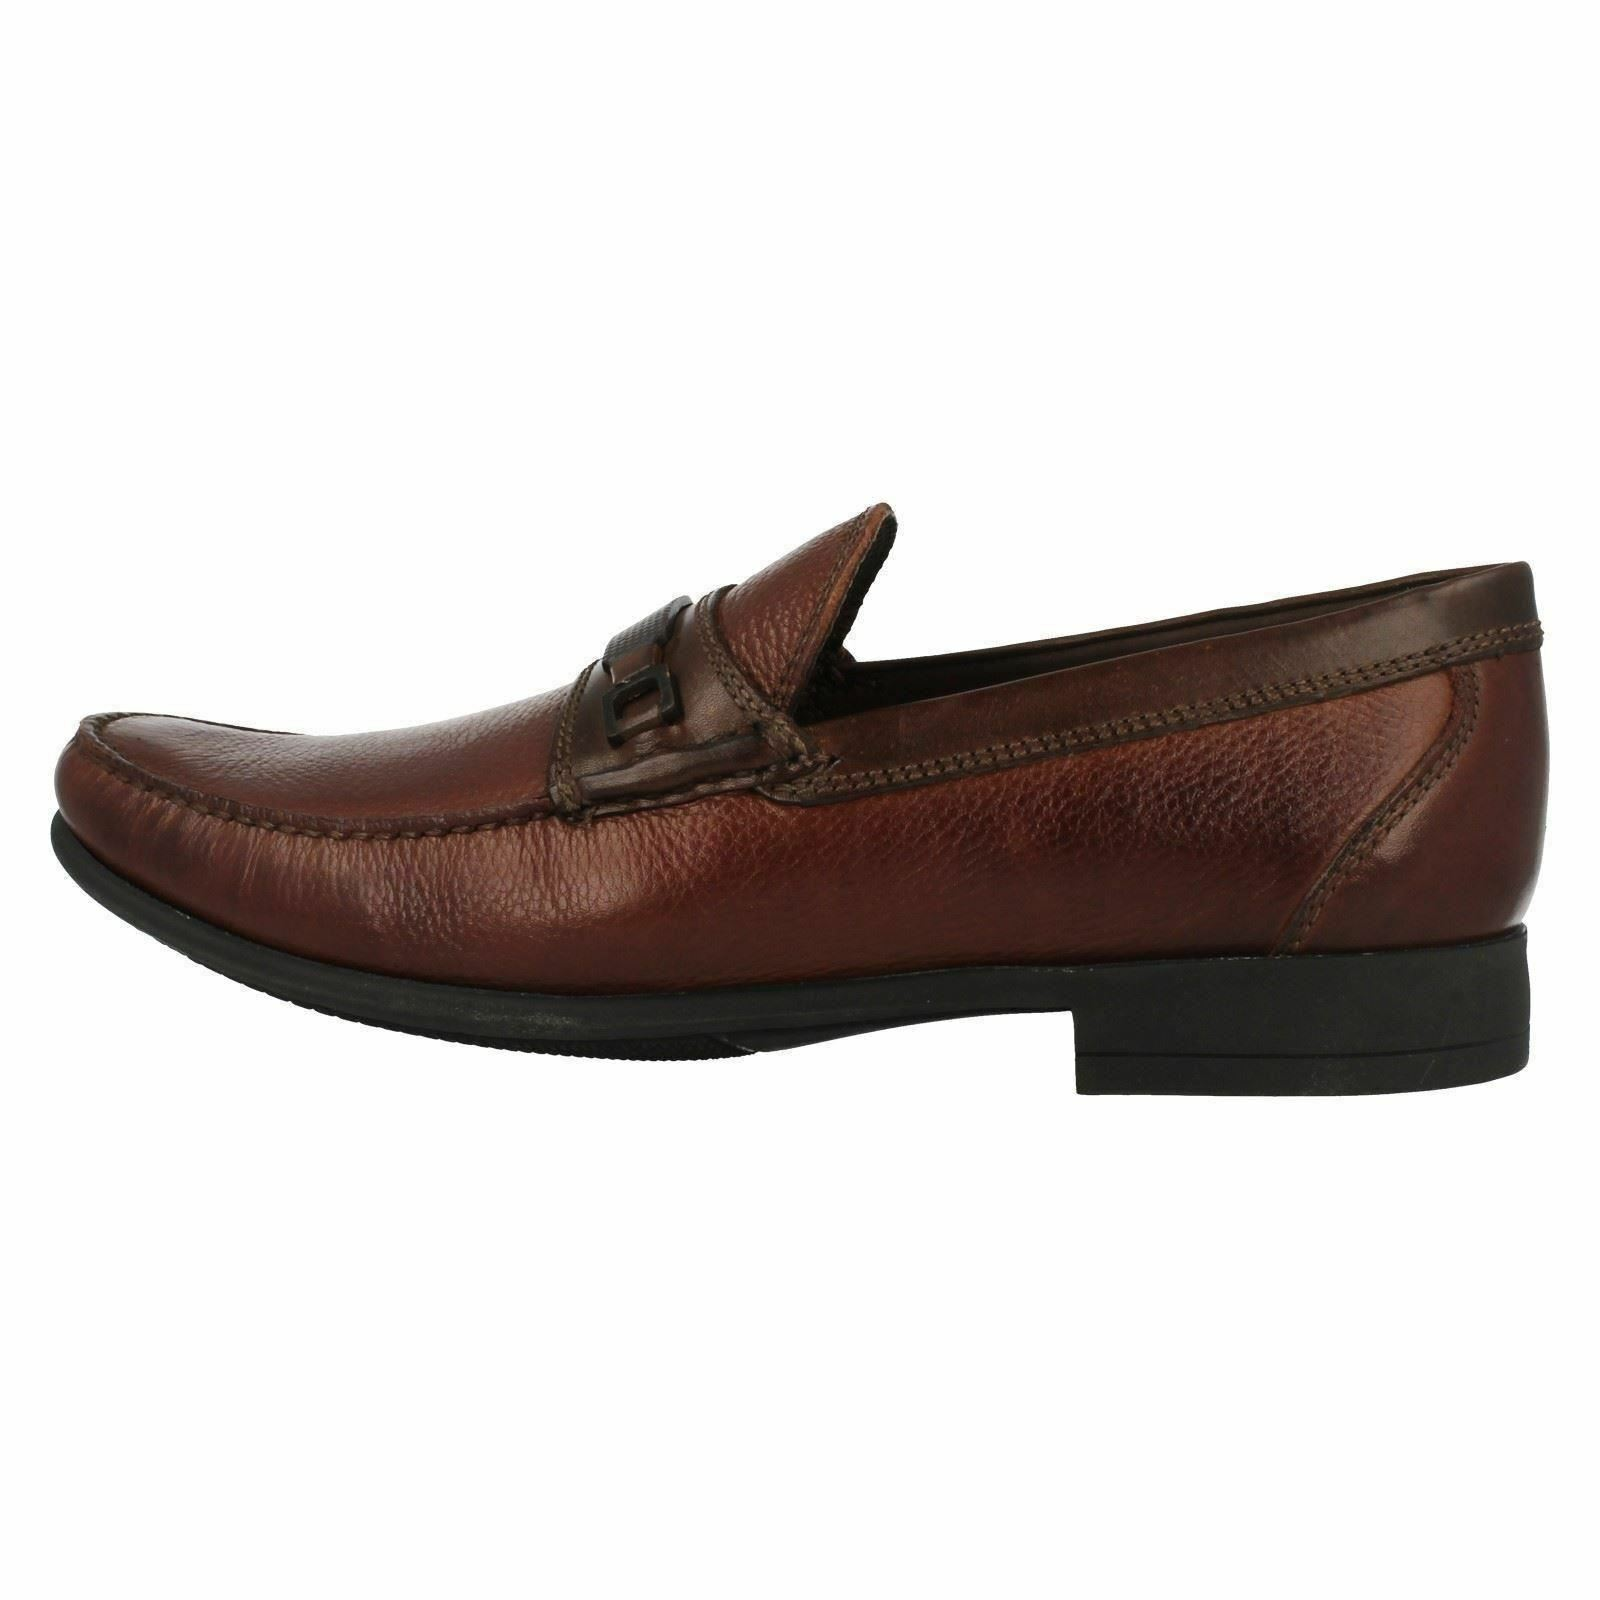 Scarpe casual da uomo  Uomo Anatomic & Co Lins Scarpe Slip-on di pelle